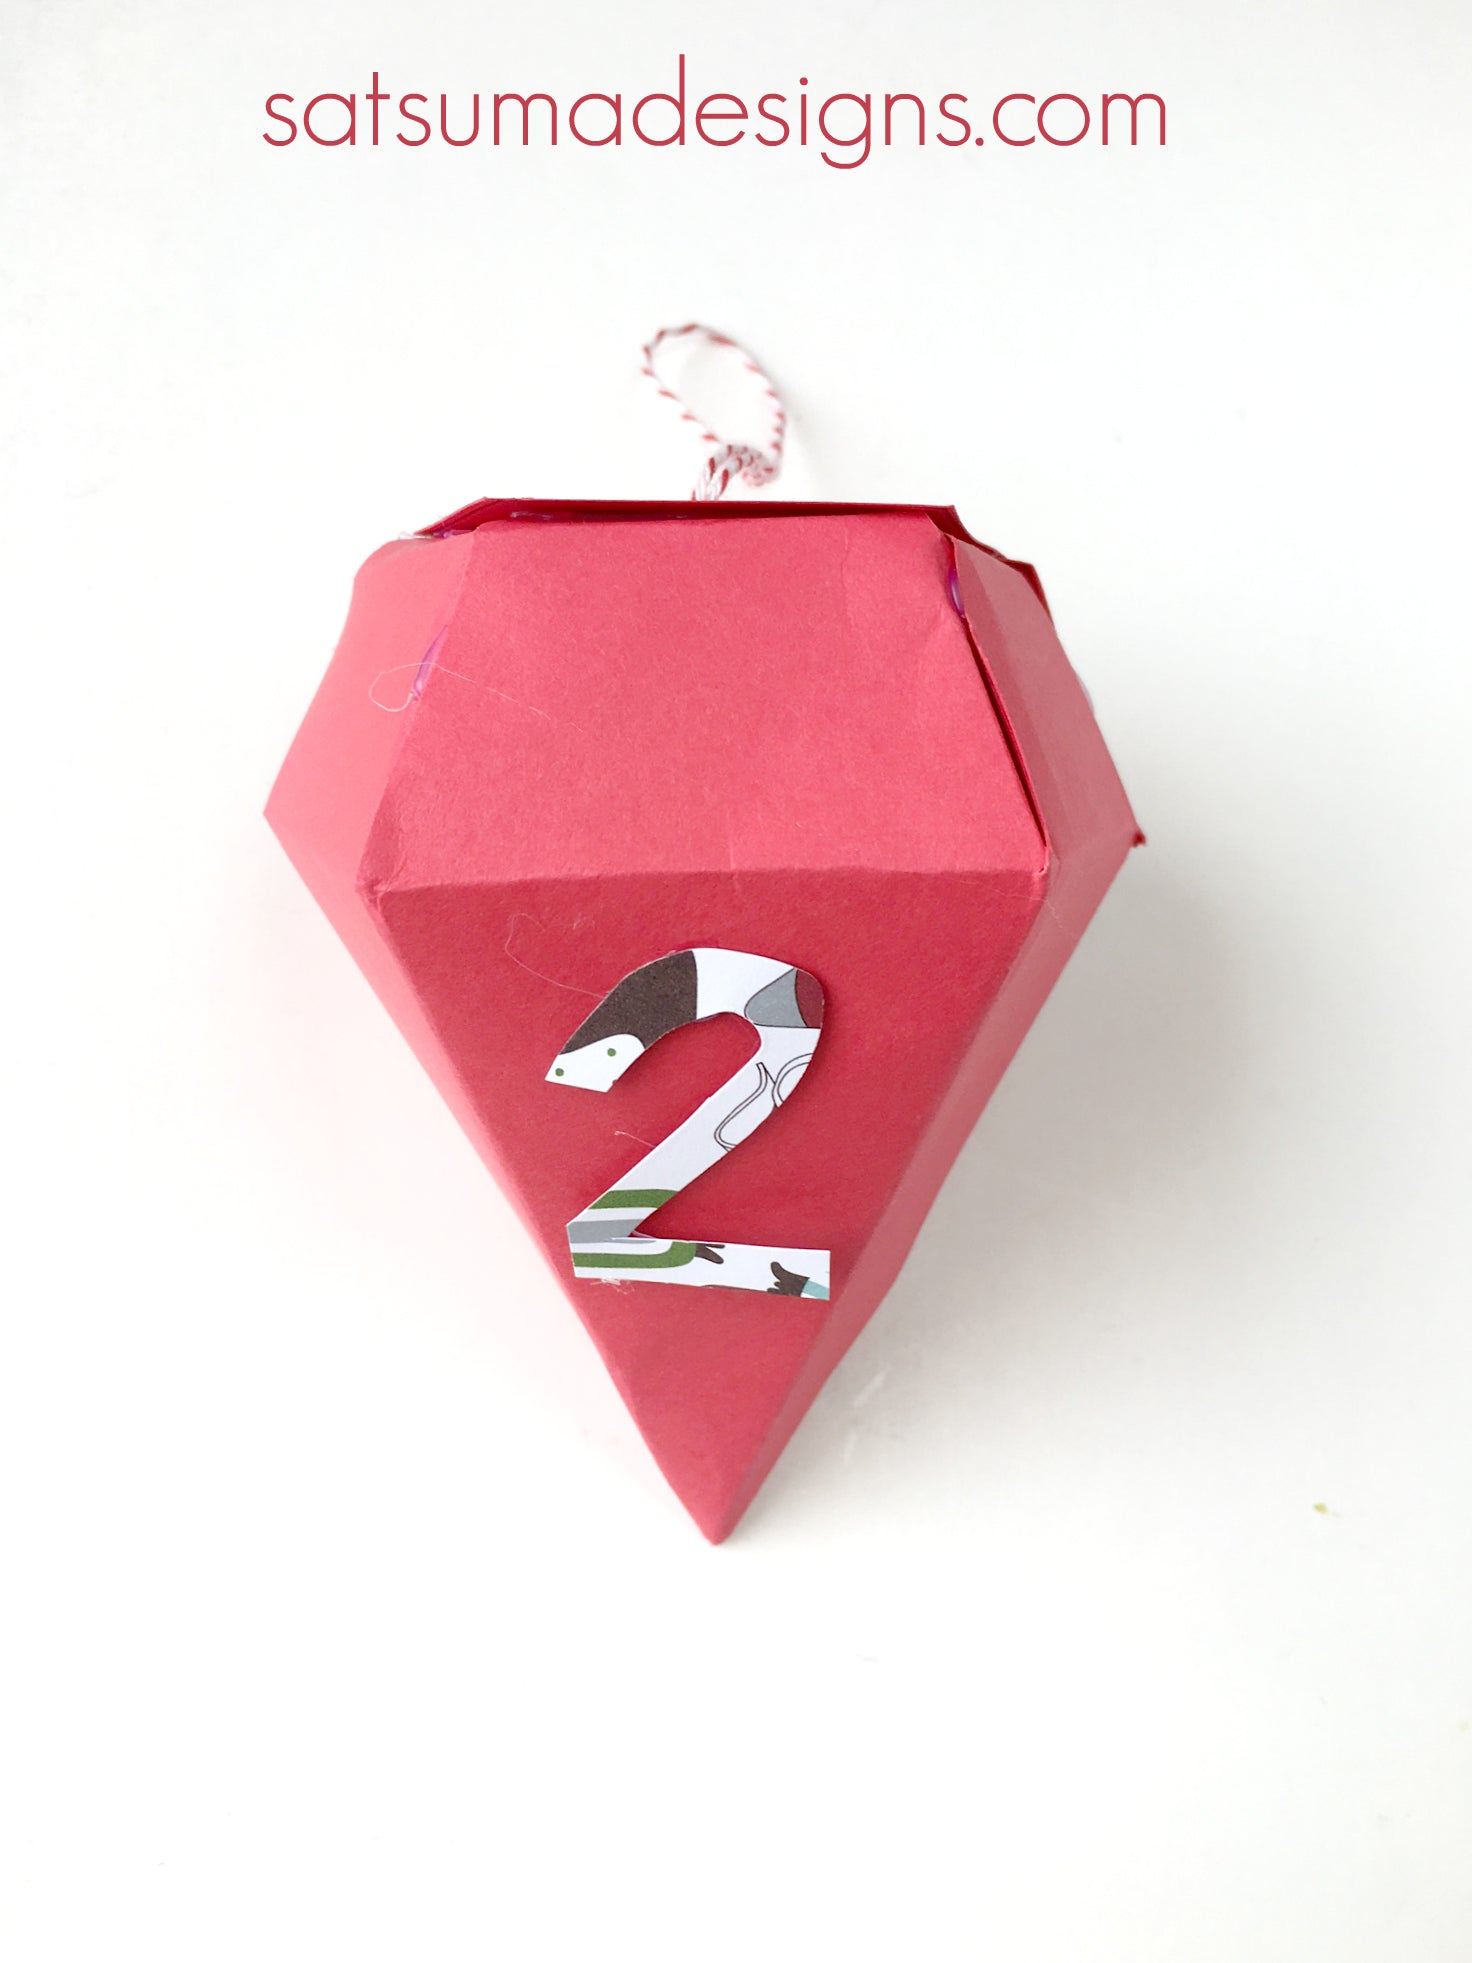 diy diamond advent calendar | SatsumaDesigns.com #advent #holiday #Christmas